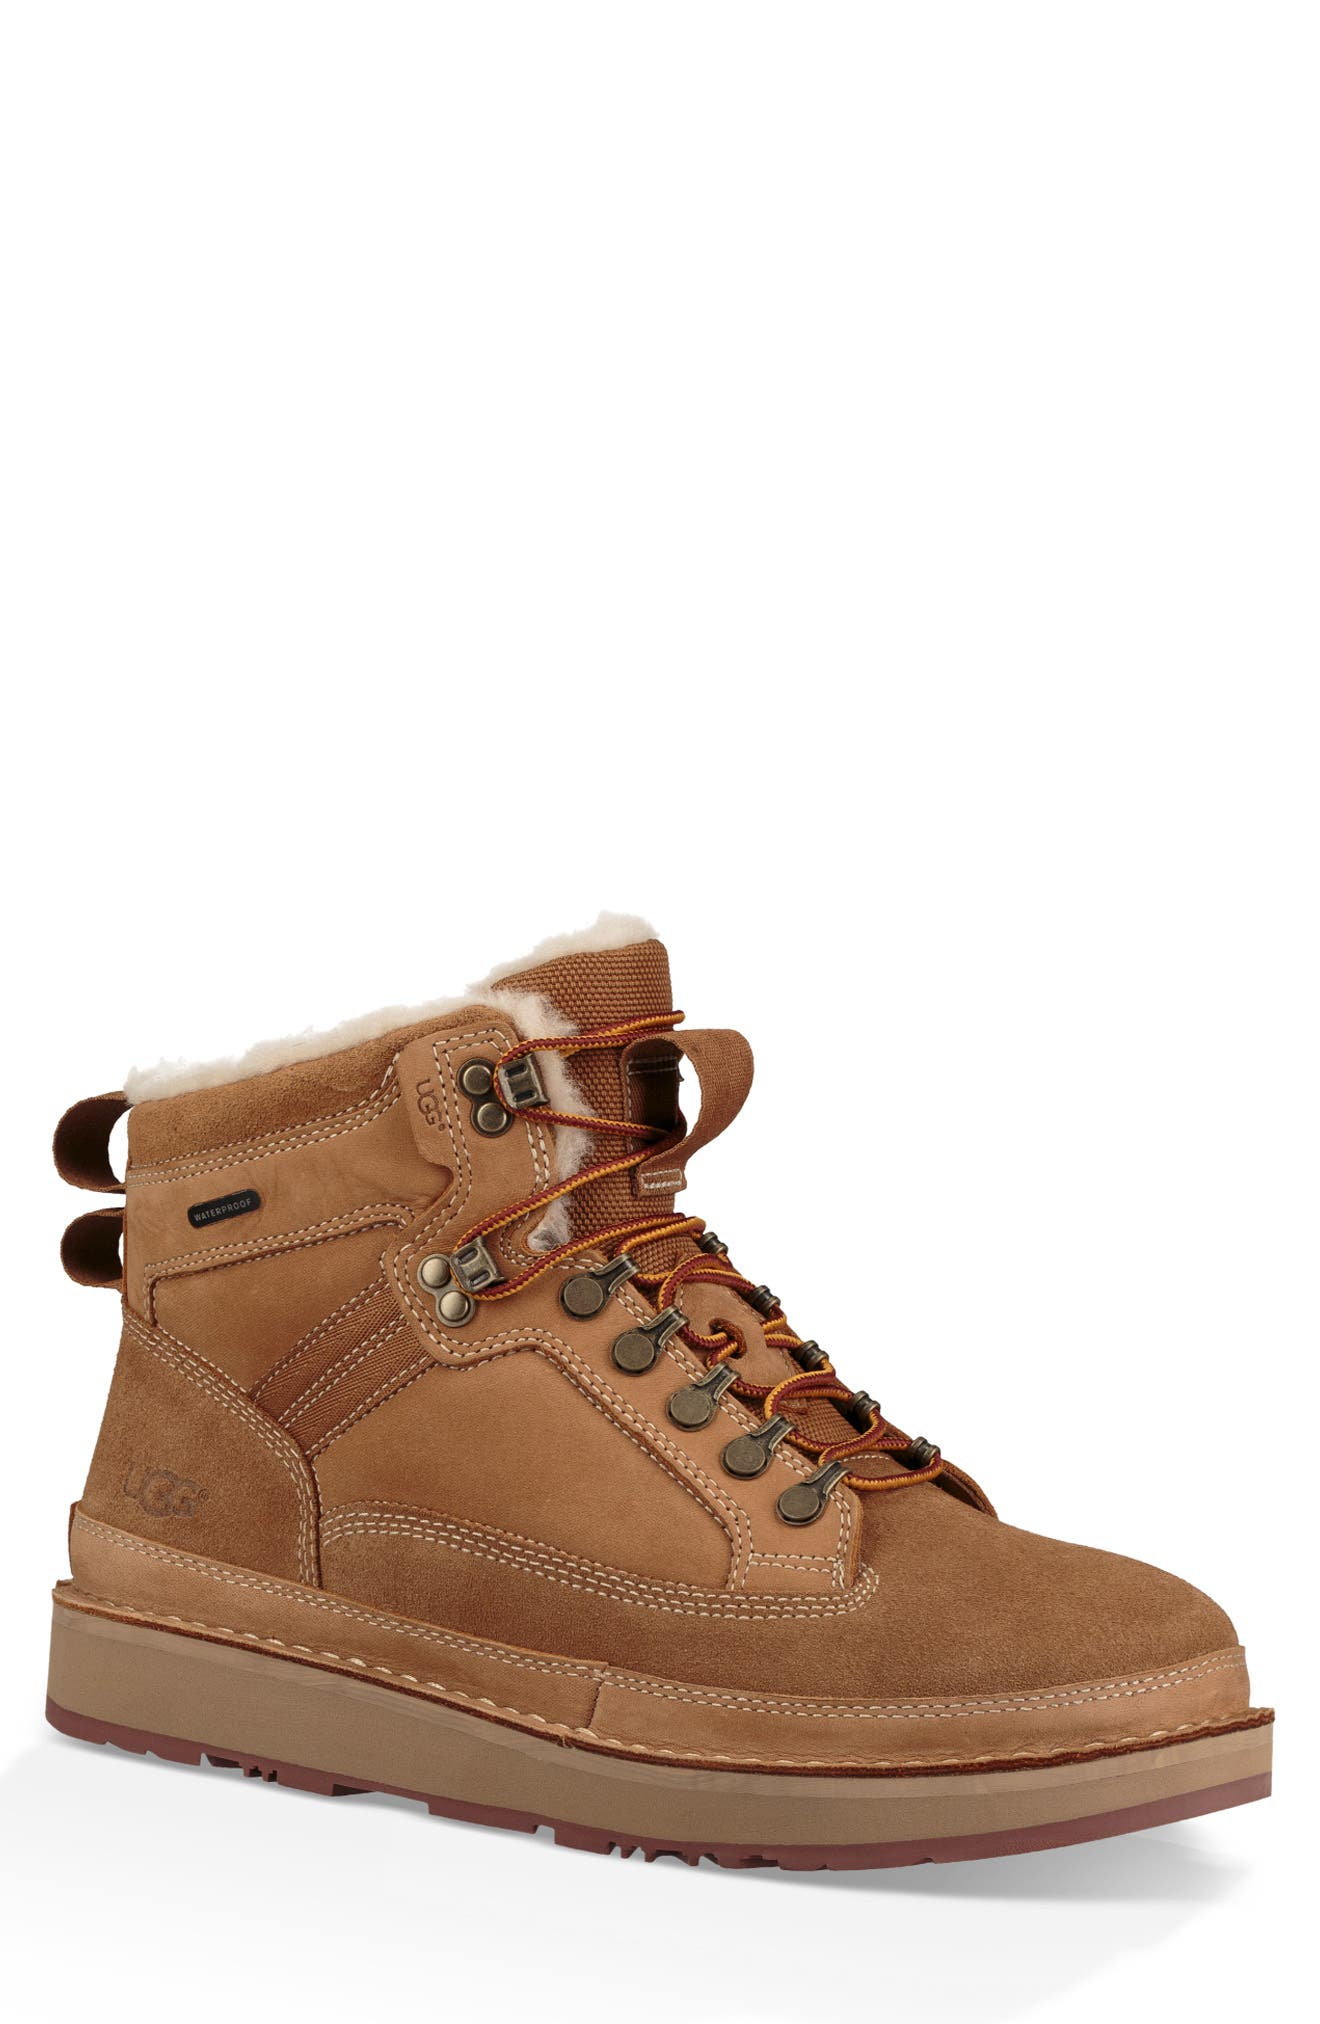 Avalanche Hiker Waterproof Boot,                             Main thumbnail 1, color,                             CHESTNUT